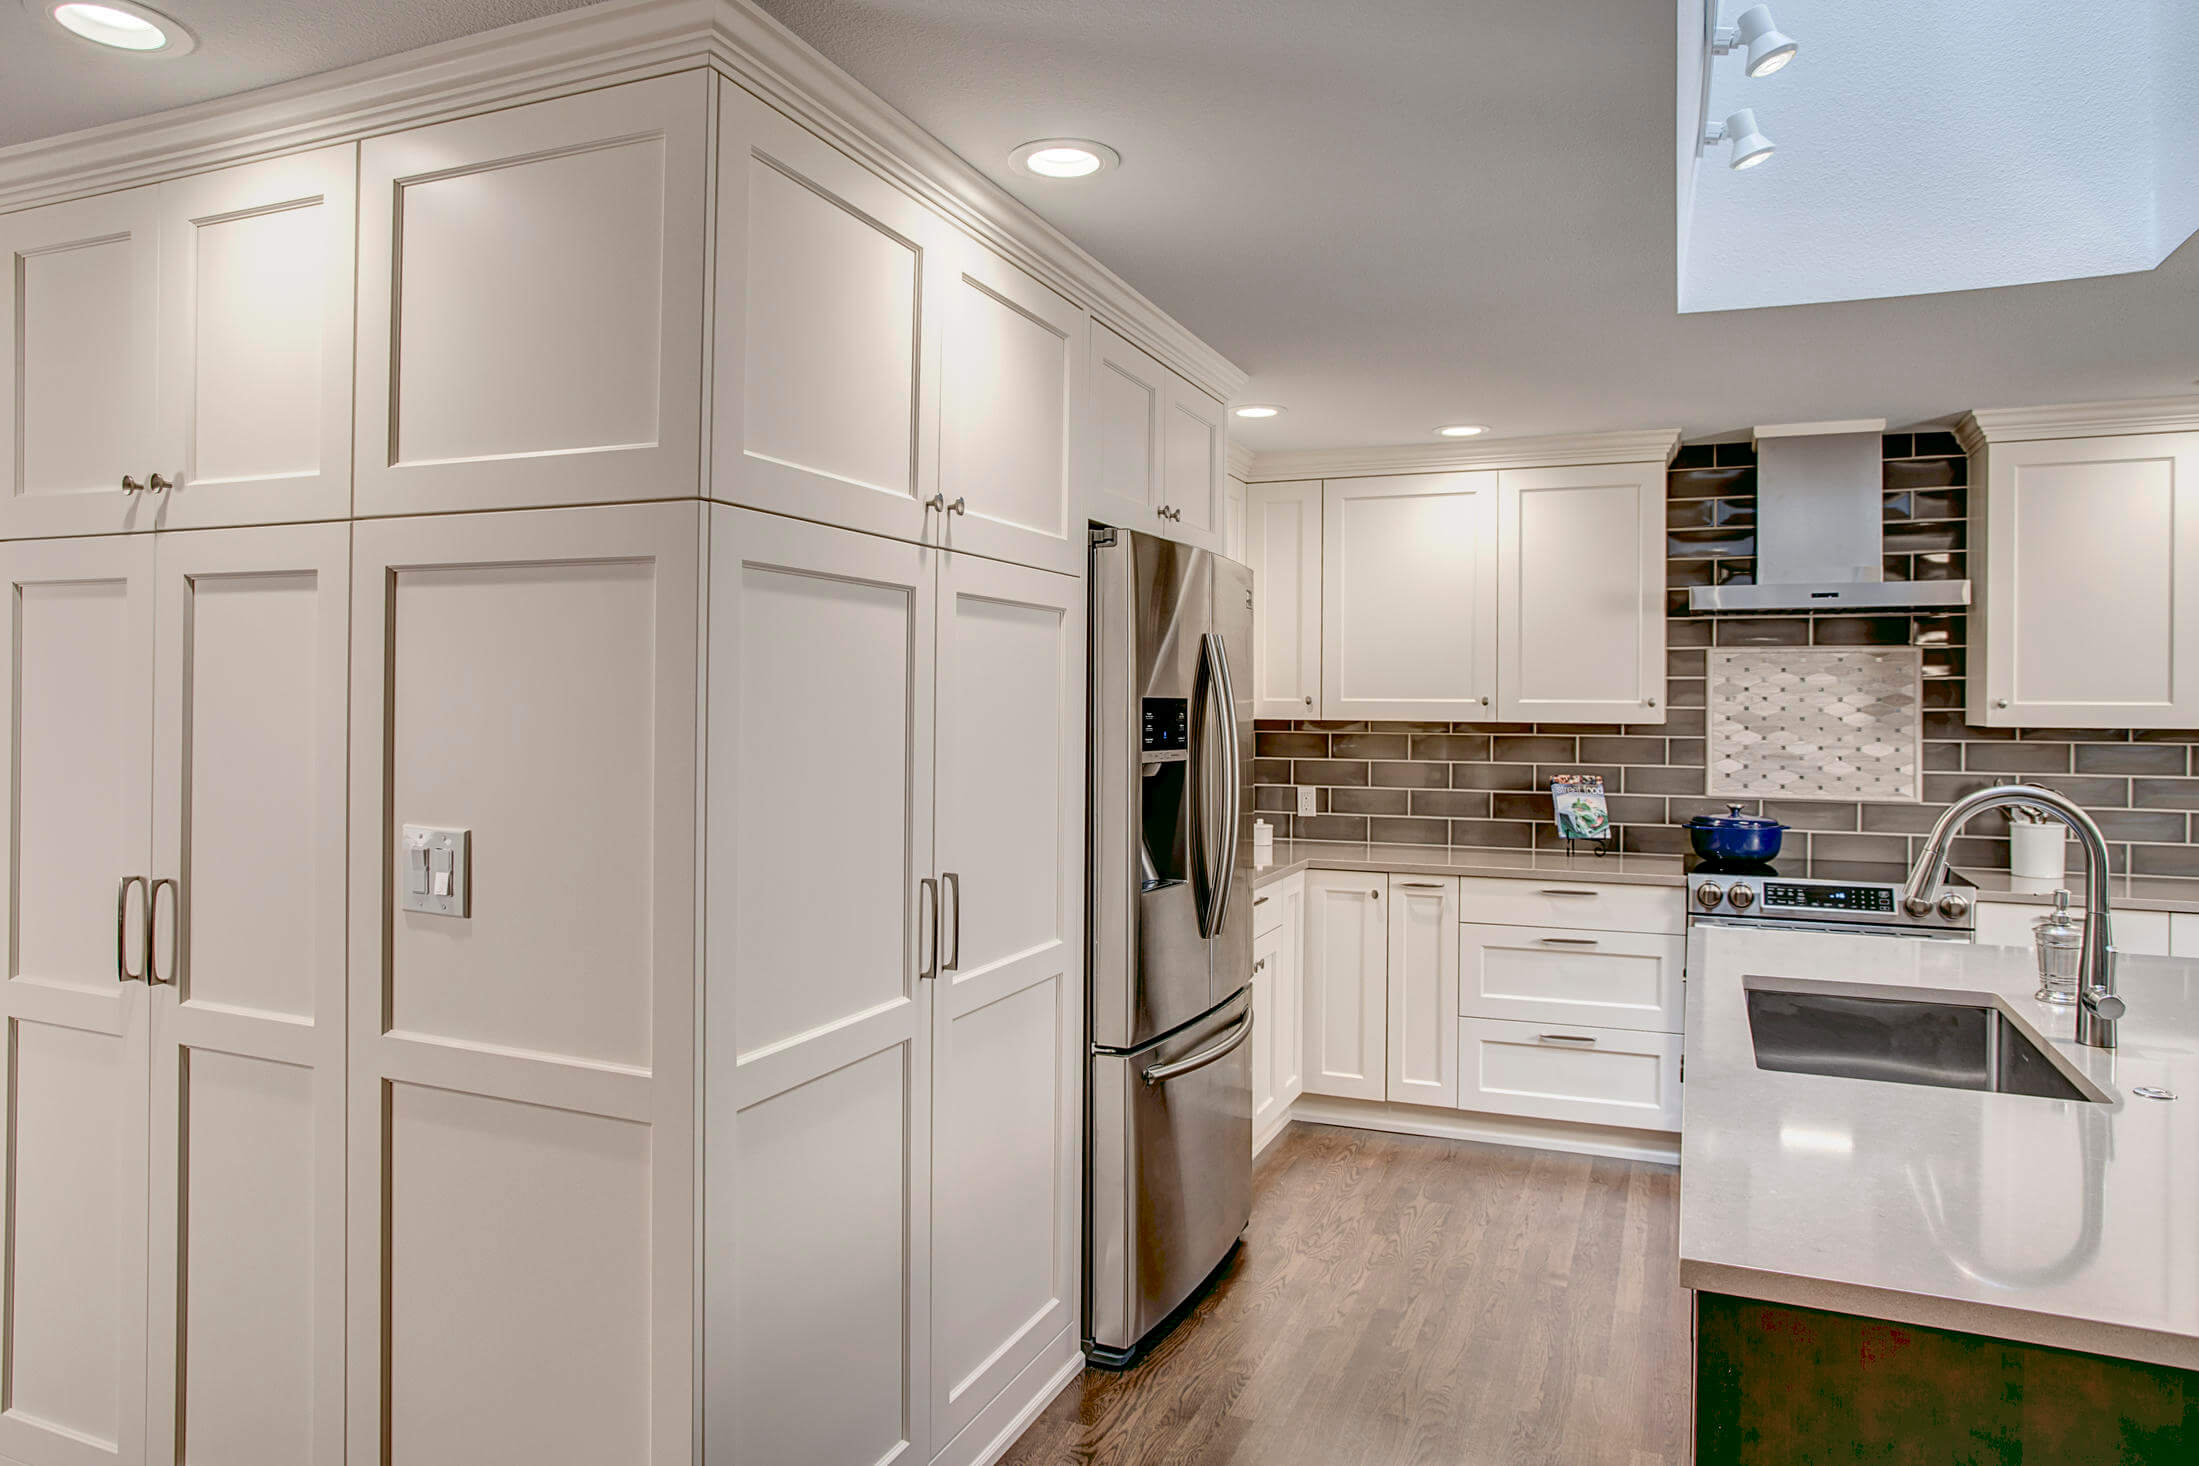 floor-to-ceiling-cabinets